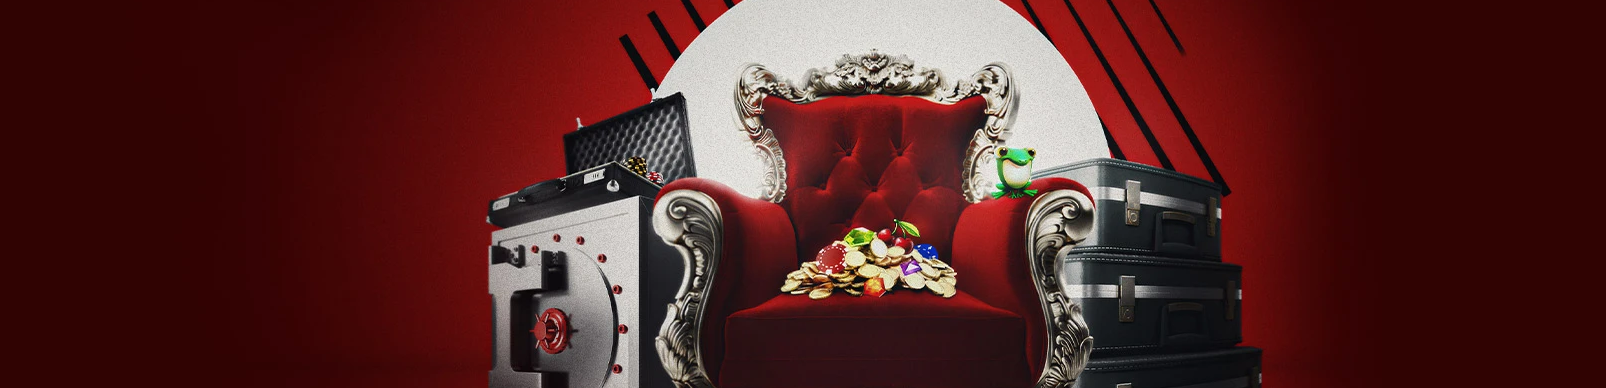 betsafe online casino prize draw promotion